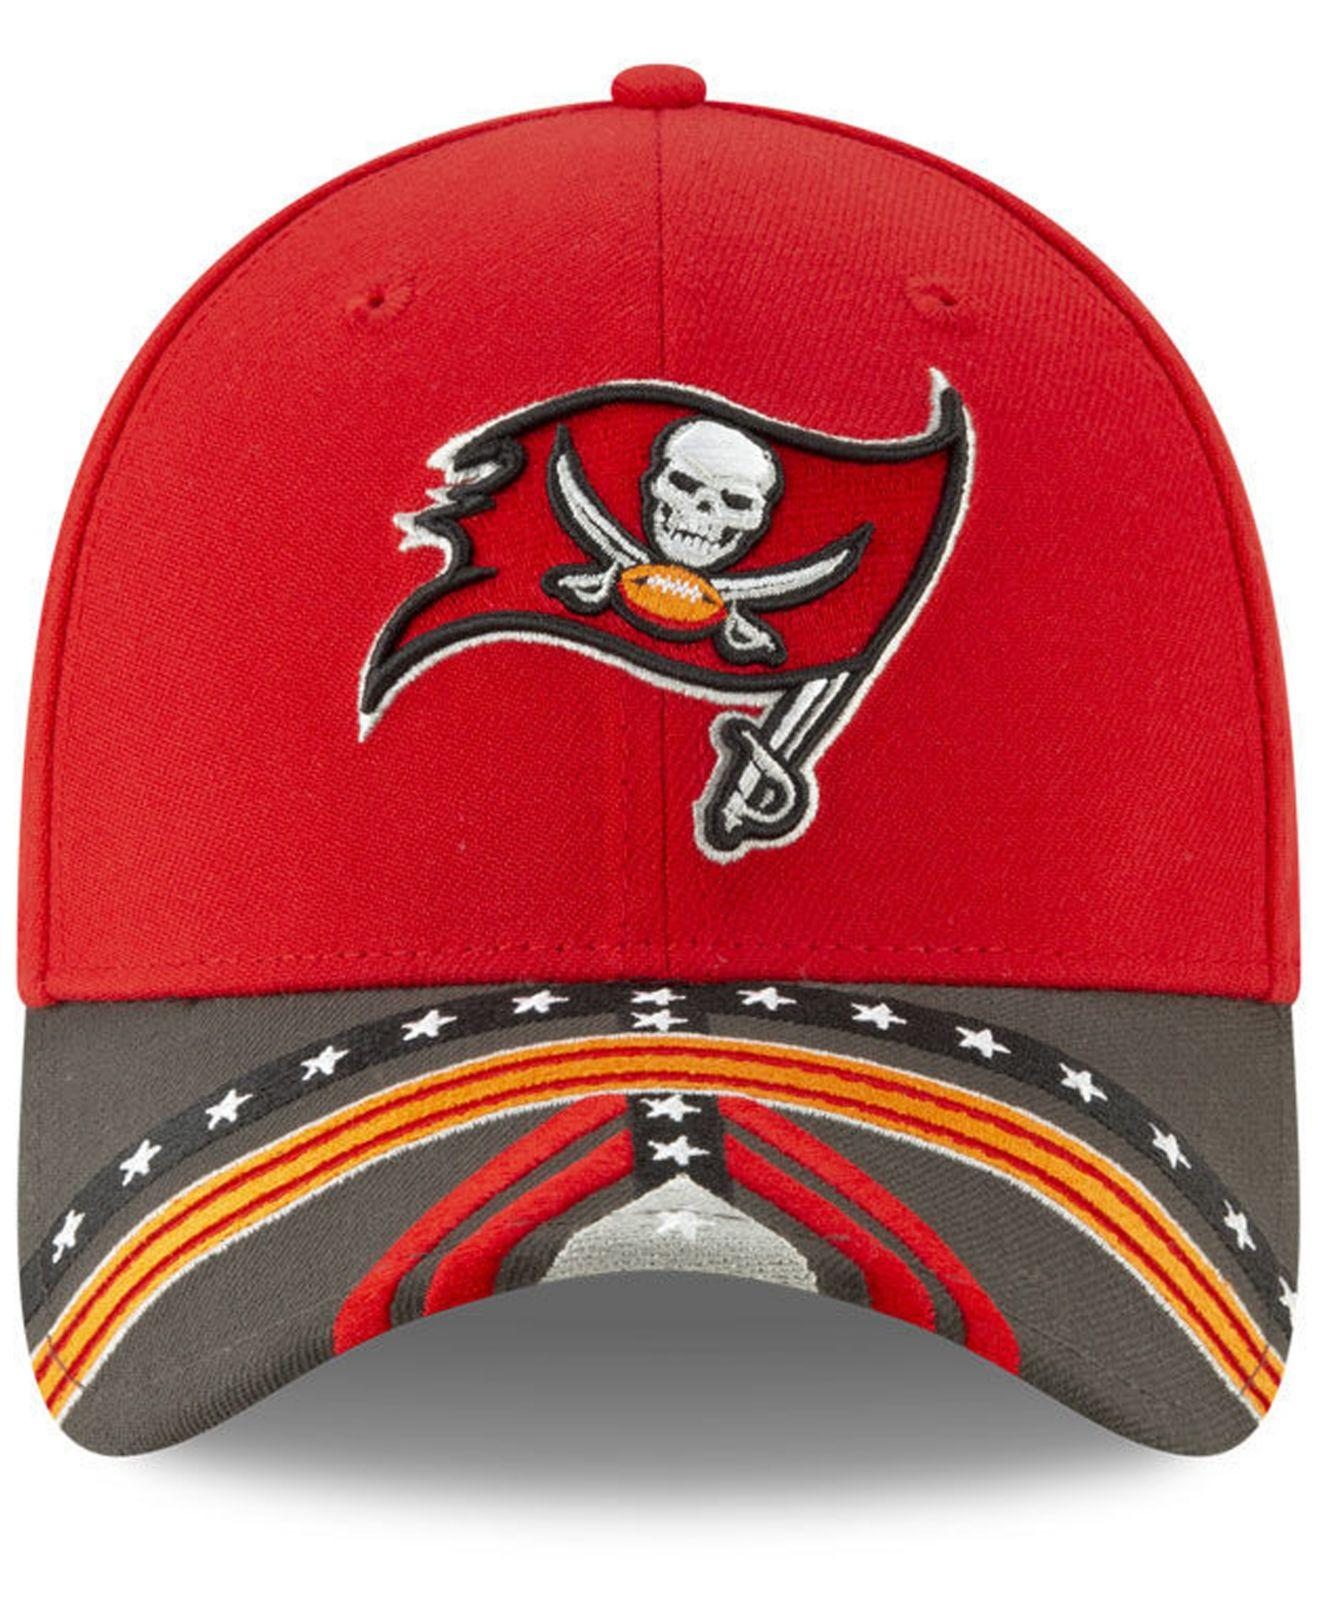 cheaper 52492 43510 Lyst - KTZ Tampa Bay Buccaneers Draft 39thirty Stretch Fitted Cap in Red  for Men